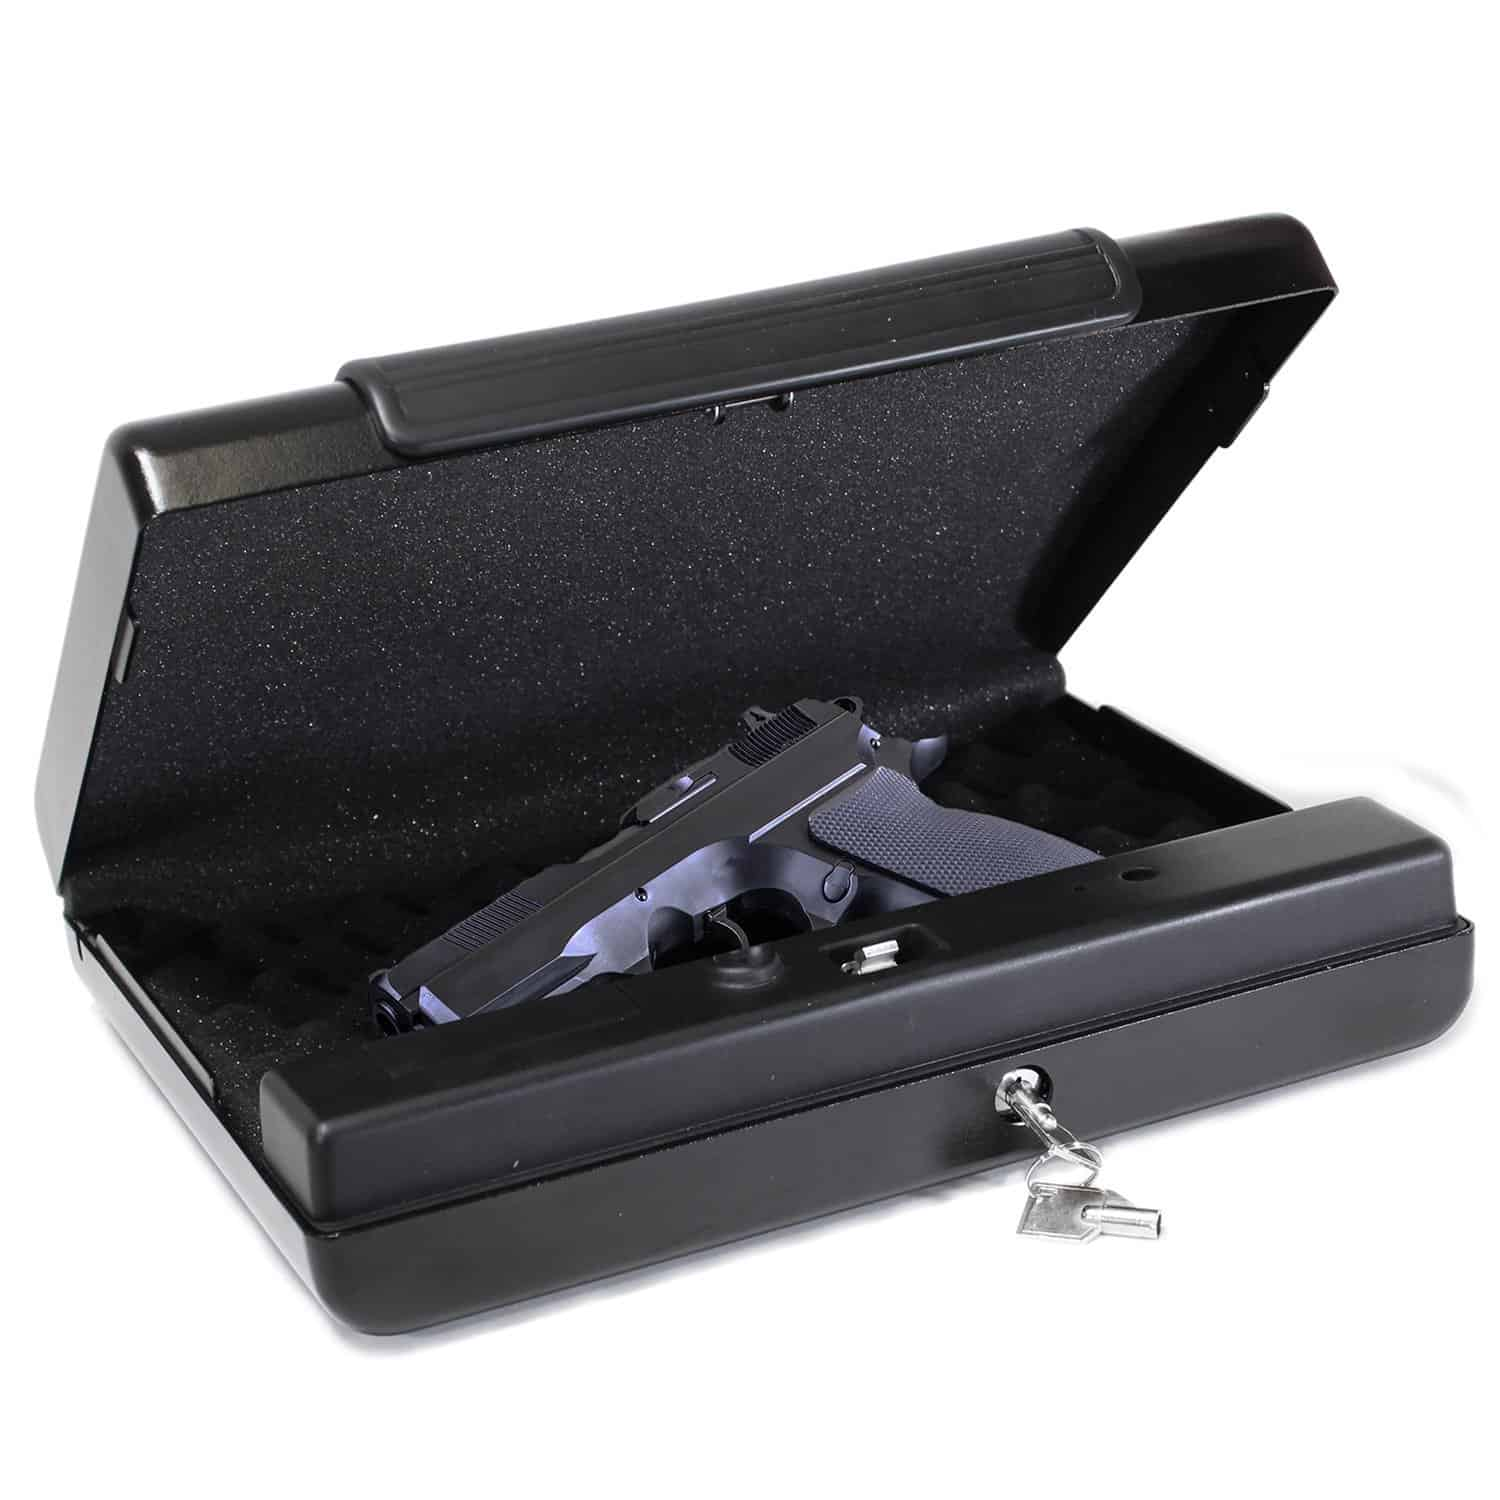 First Alert 5200DF Portable Handgun or Pistol Safe Review